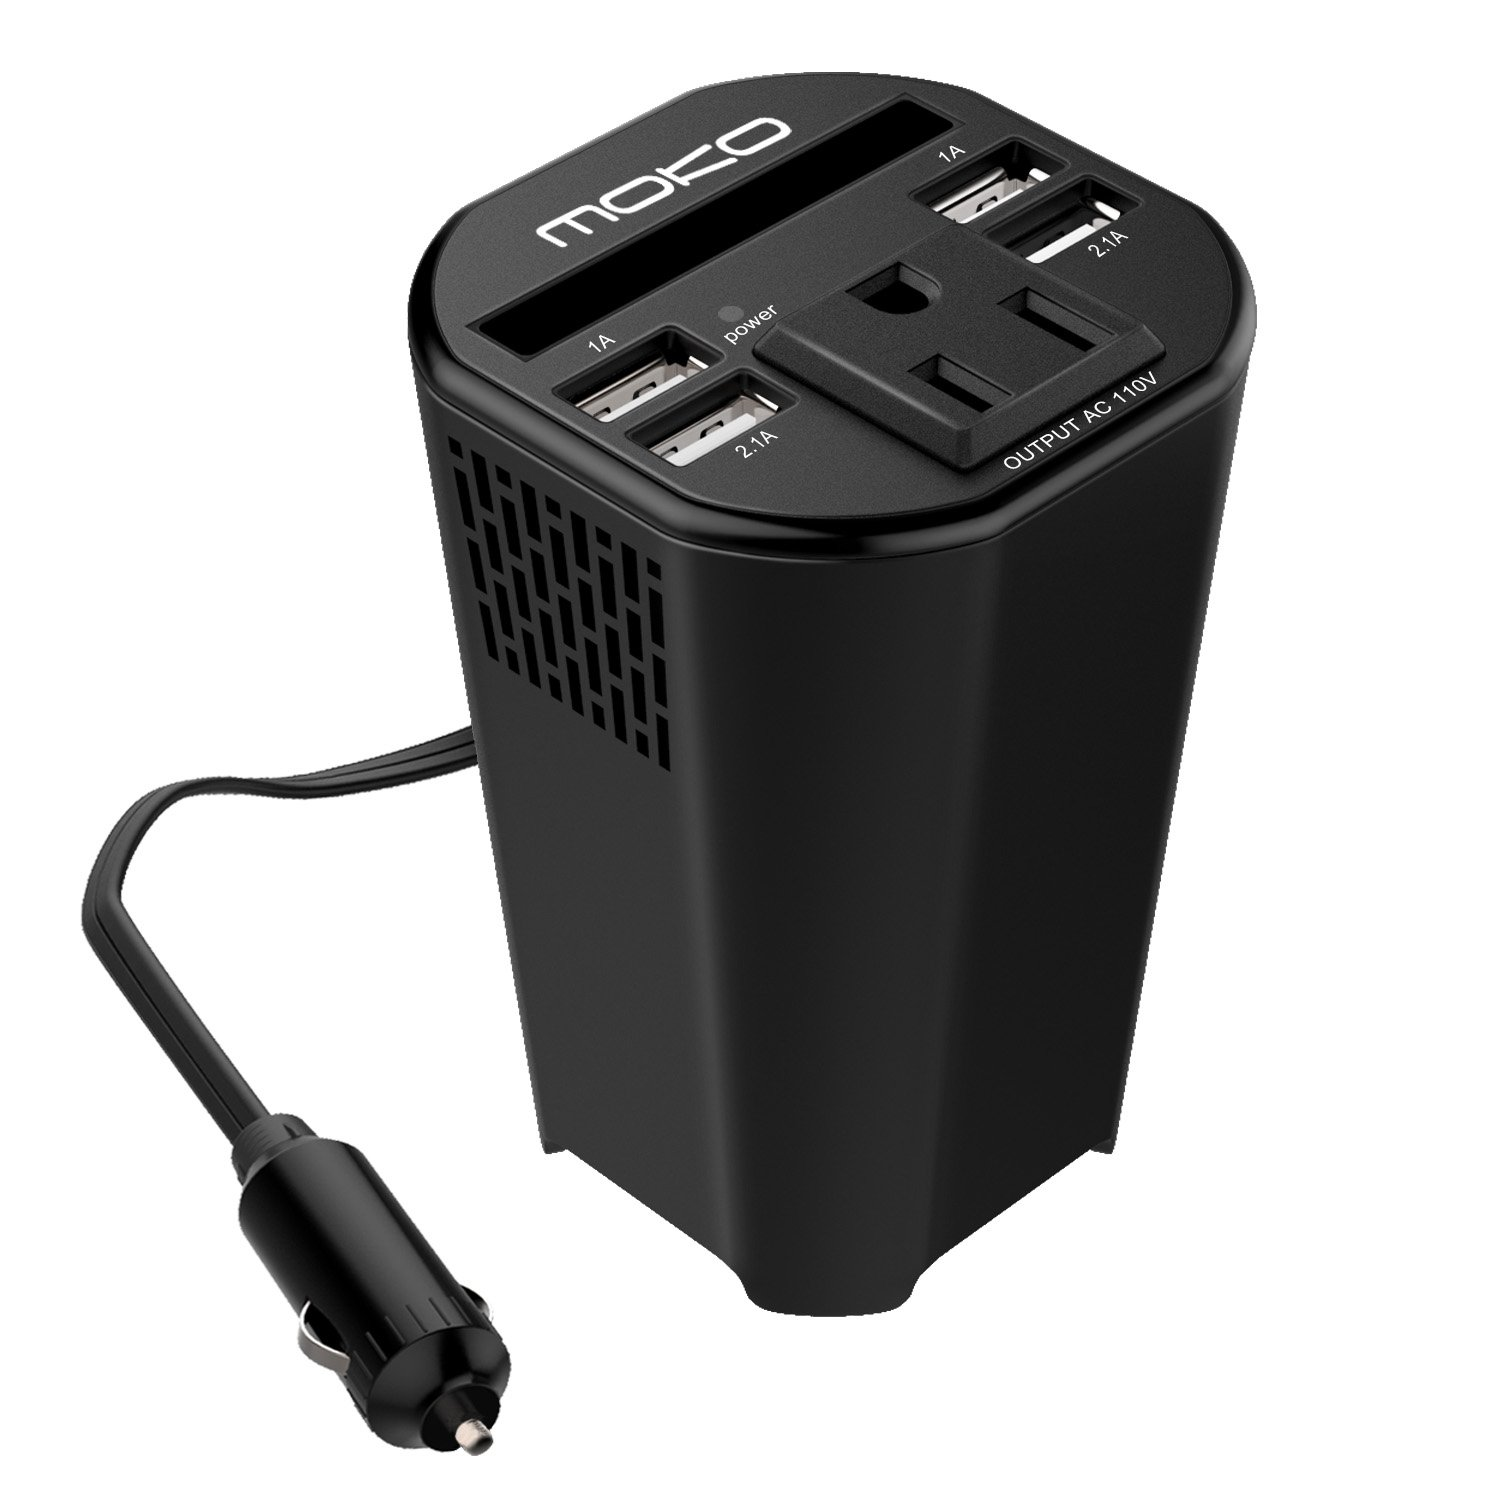 MoKo 150W Car Power Inverter, DC 12V to 110V AC Outlet Cup Holder Converter Adapter, with 4 USB Port Charger, for iPhone X/8/8 Plus, MacBook, iPad Pro, Chromebook, Galaxy S8 and etc. (Black) New